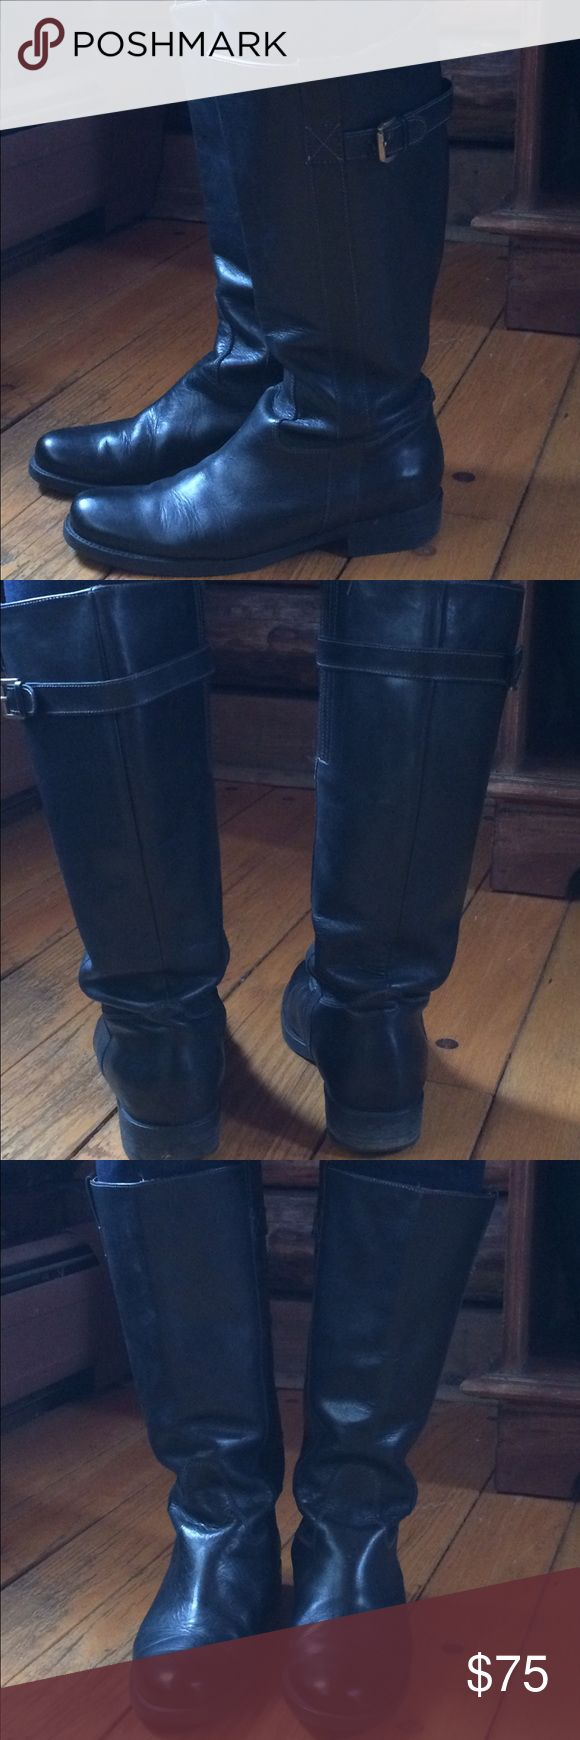 J.Crew expanded calf leather boots size 9 EUC black leather boots. Very cute. J. Crew Shoes